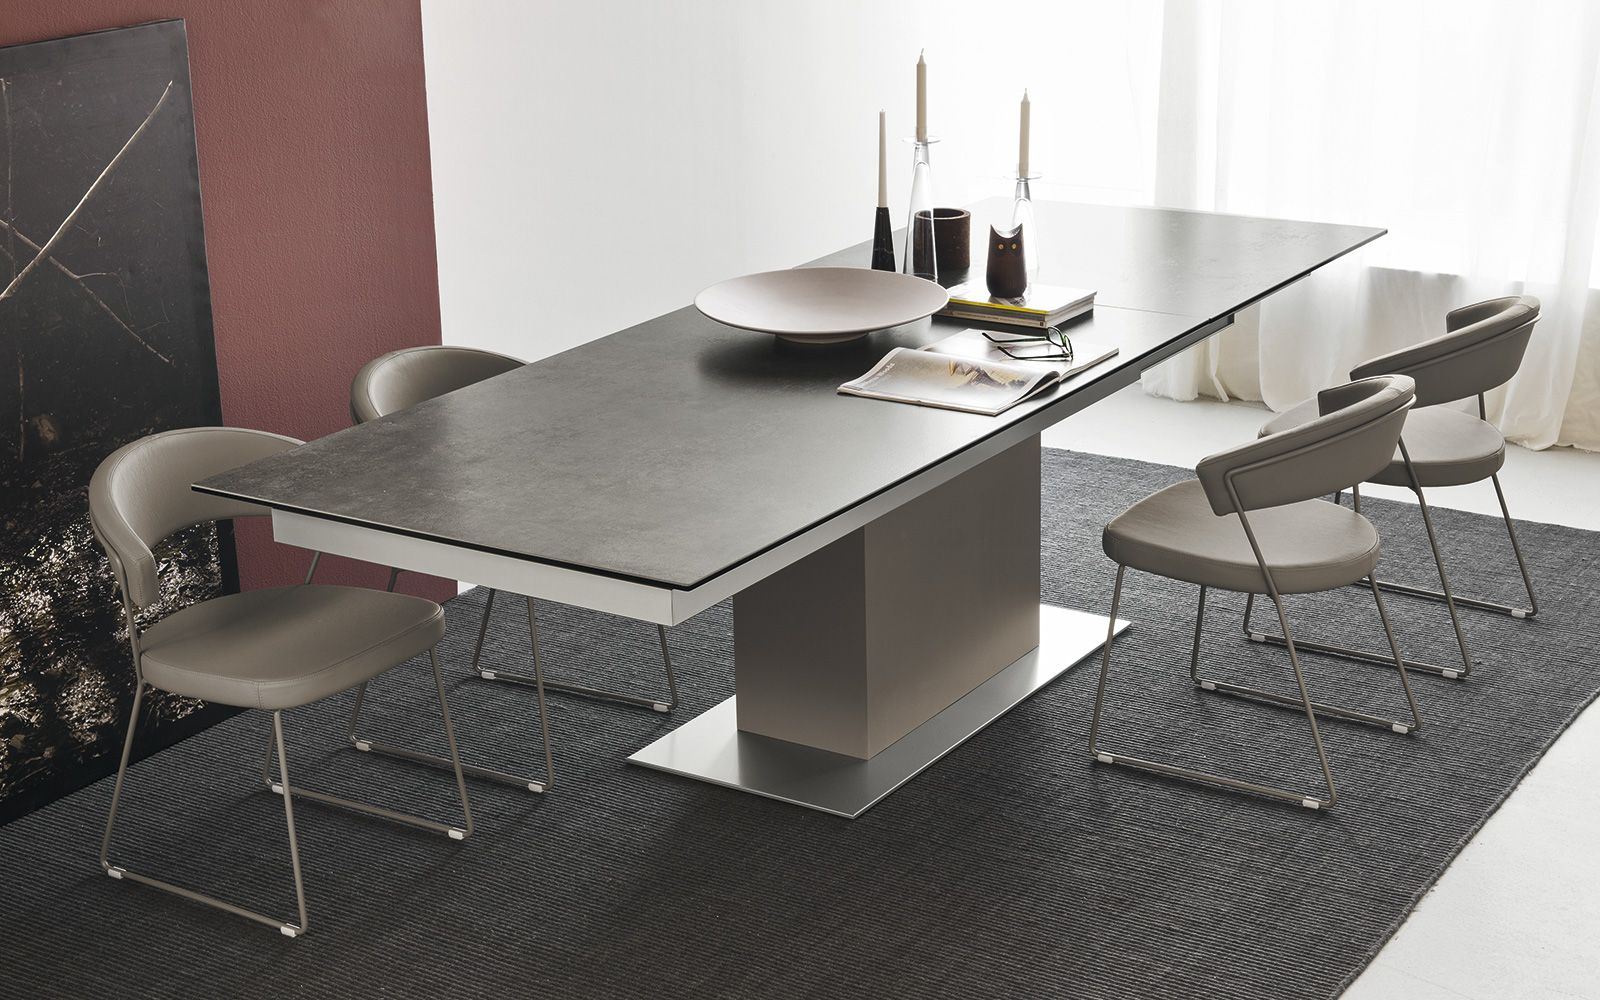 Table Super Extensible Sincro Calligaris Cs 4087 Home Pinterest # Calligaris Meuble Suspendu